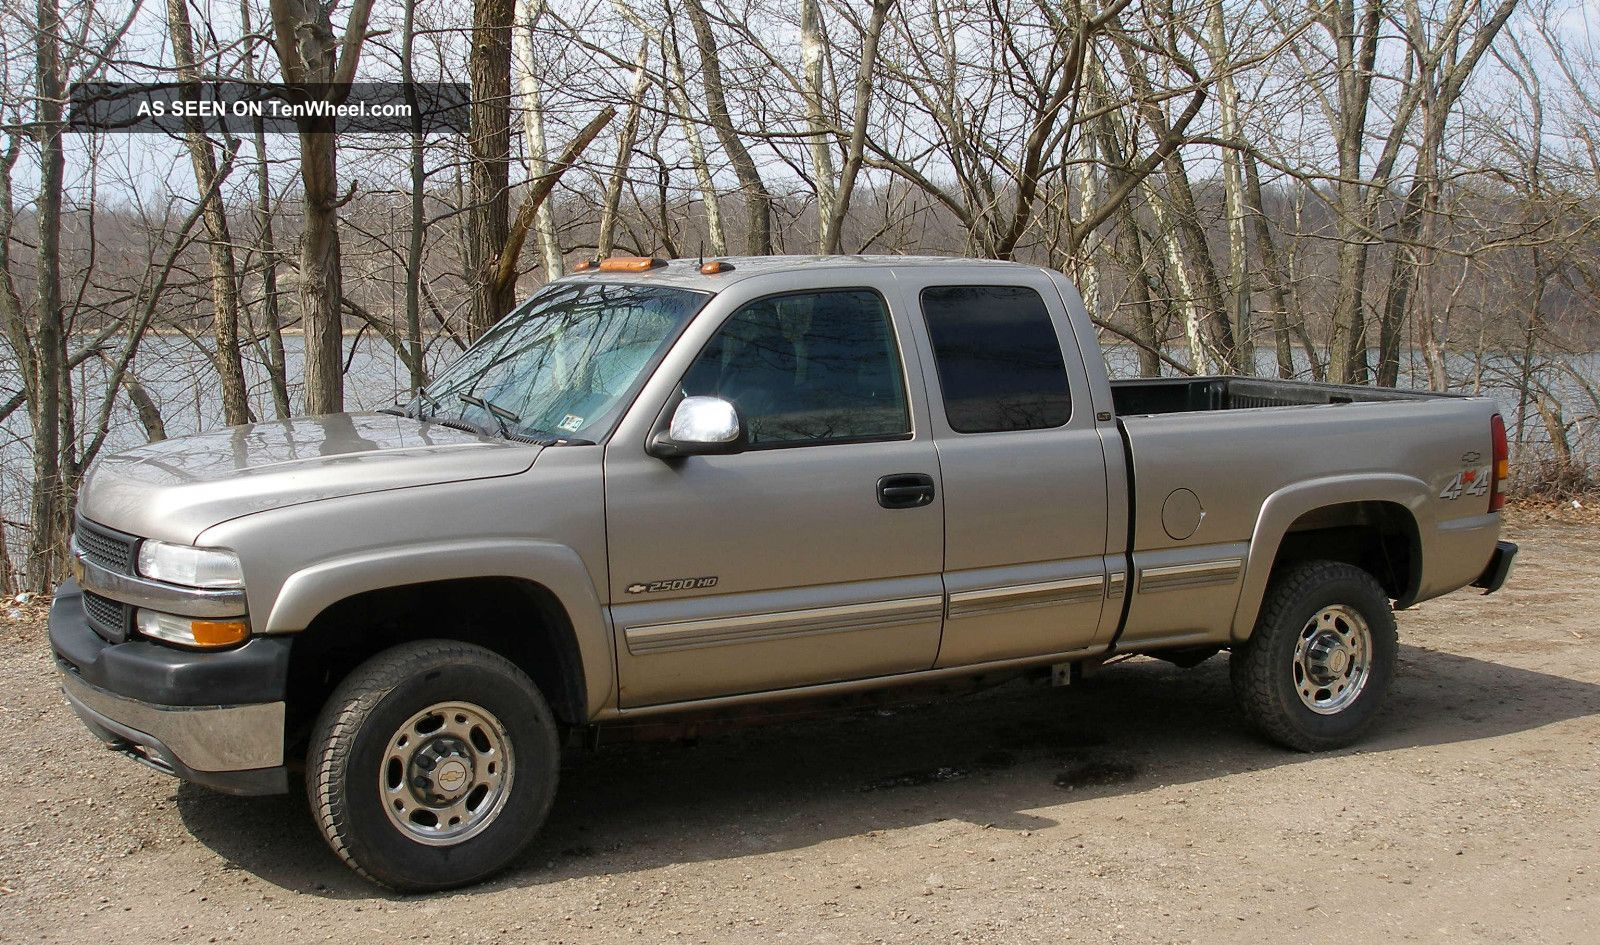 2001 chevy silverado lt 2500hd 4wd extended cab loaded. Black Bedroom Furniture Sets. Home Design Ideas